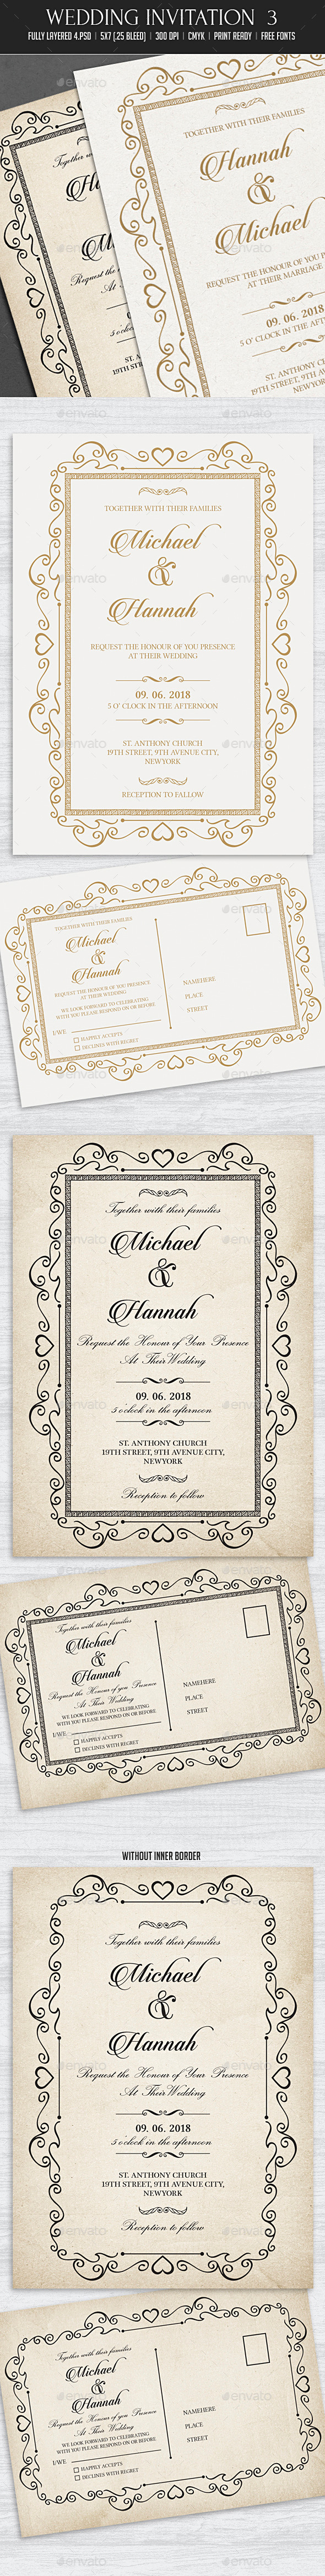 Wedding Invitation 3 - Weddings Cards & Invites